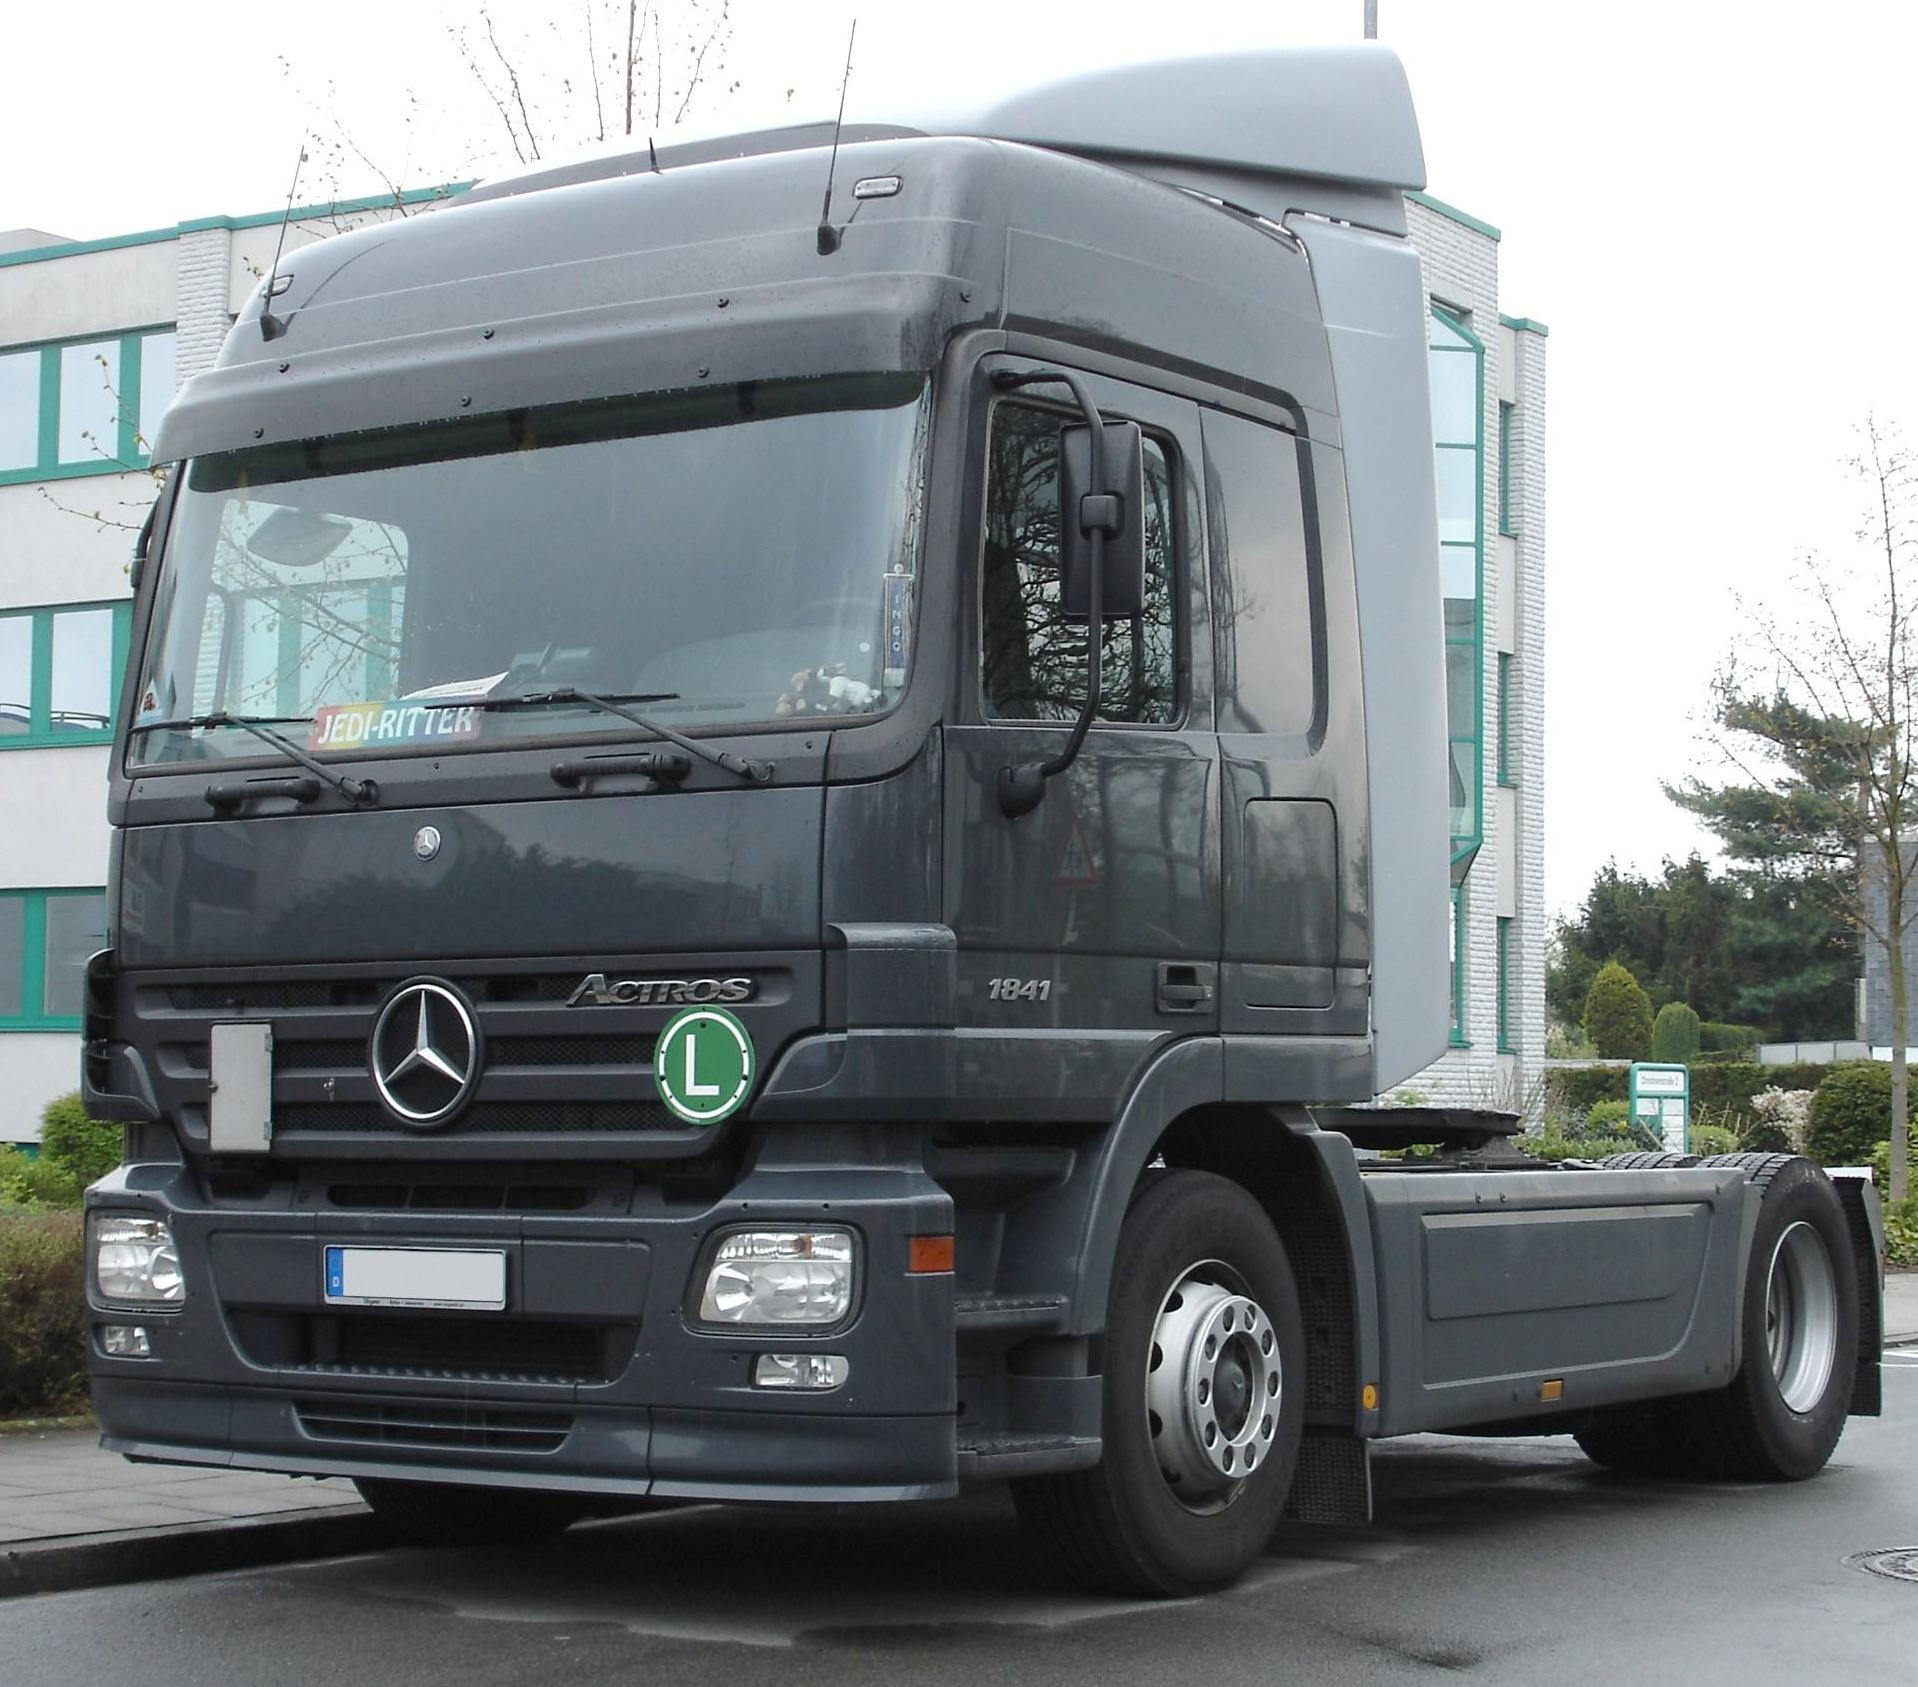 MBM also assembles Mercedes-Benz and Mitsubishi Fuso commercial vehicles.